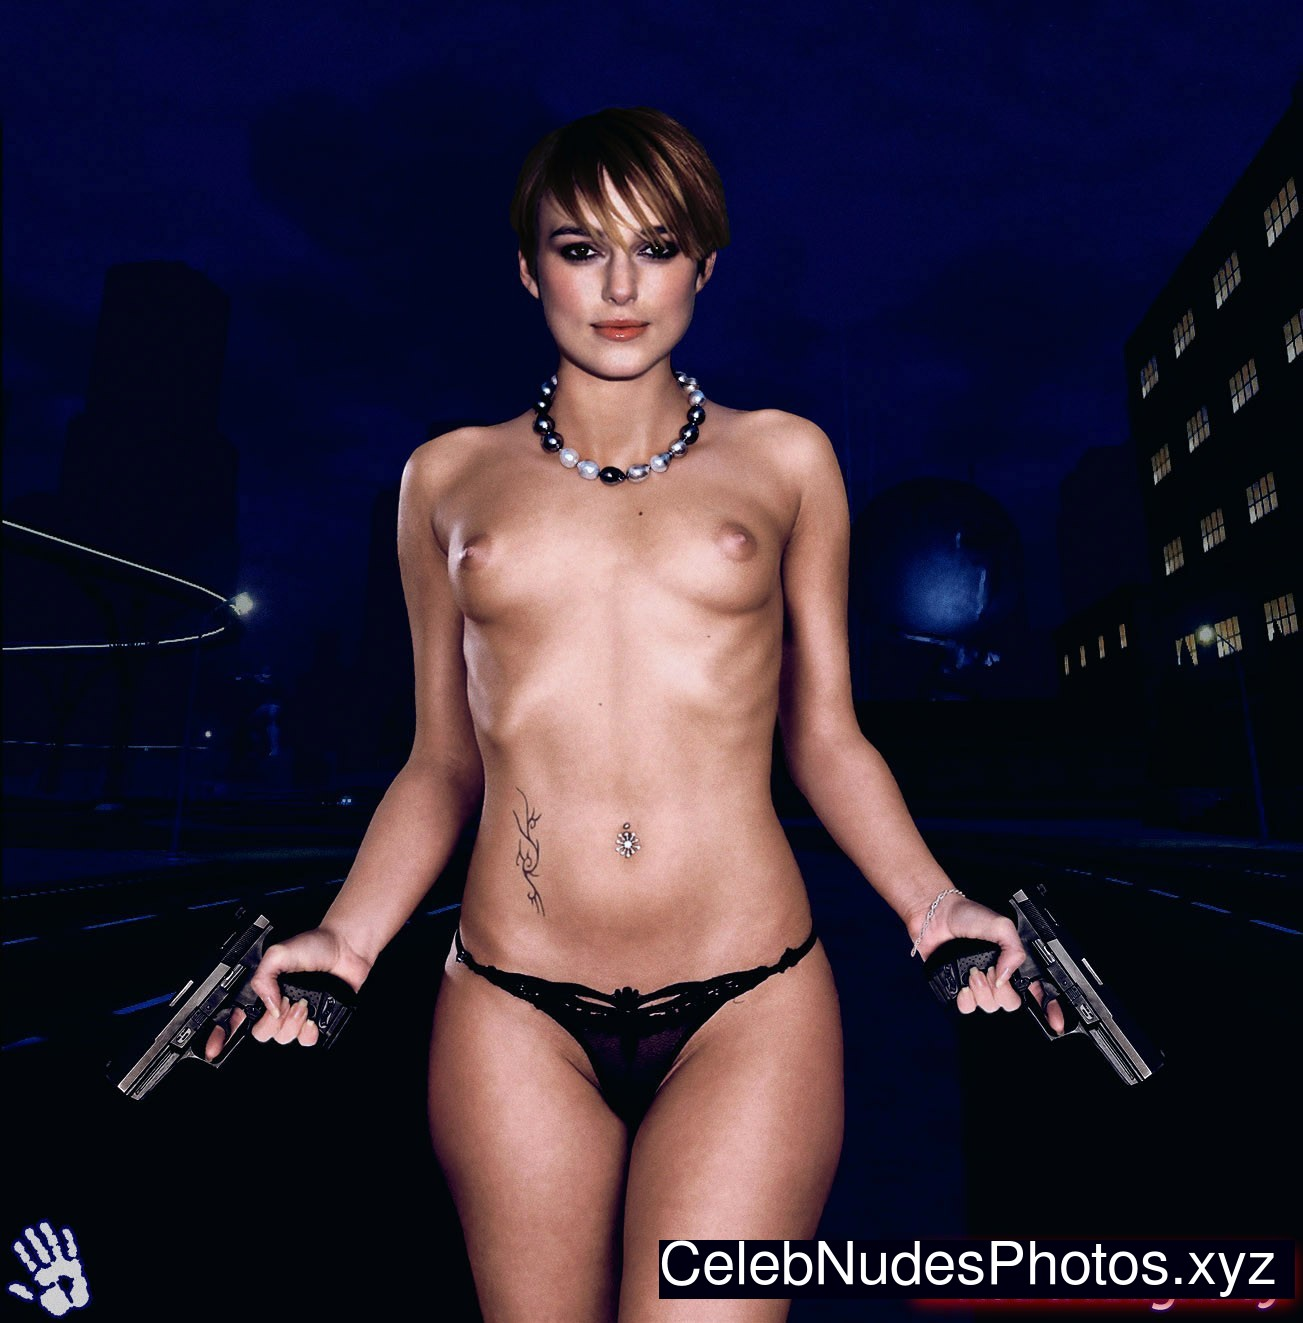 Rather amusing Keira knightley nudes videos free